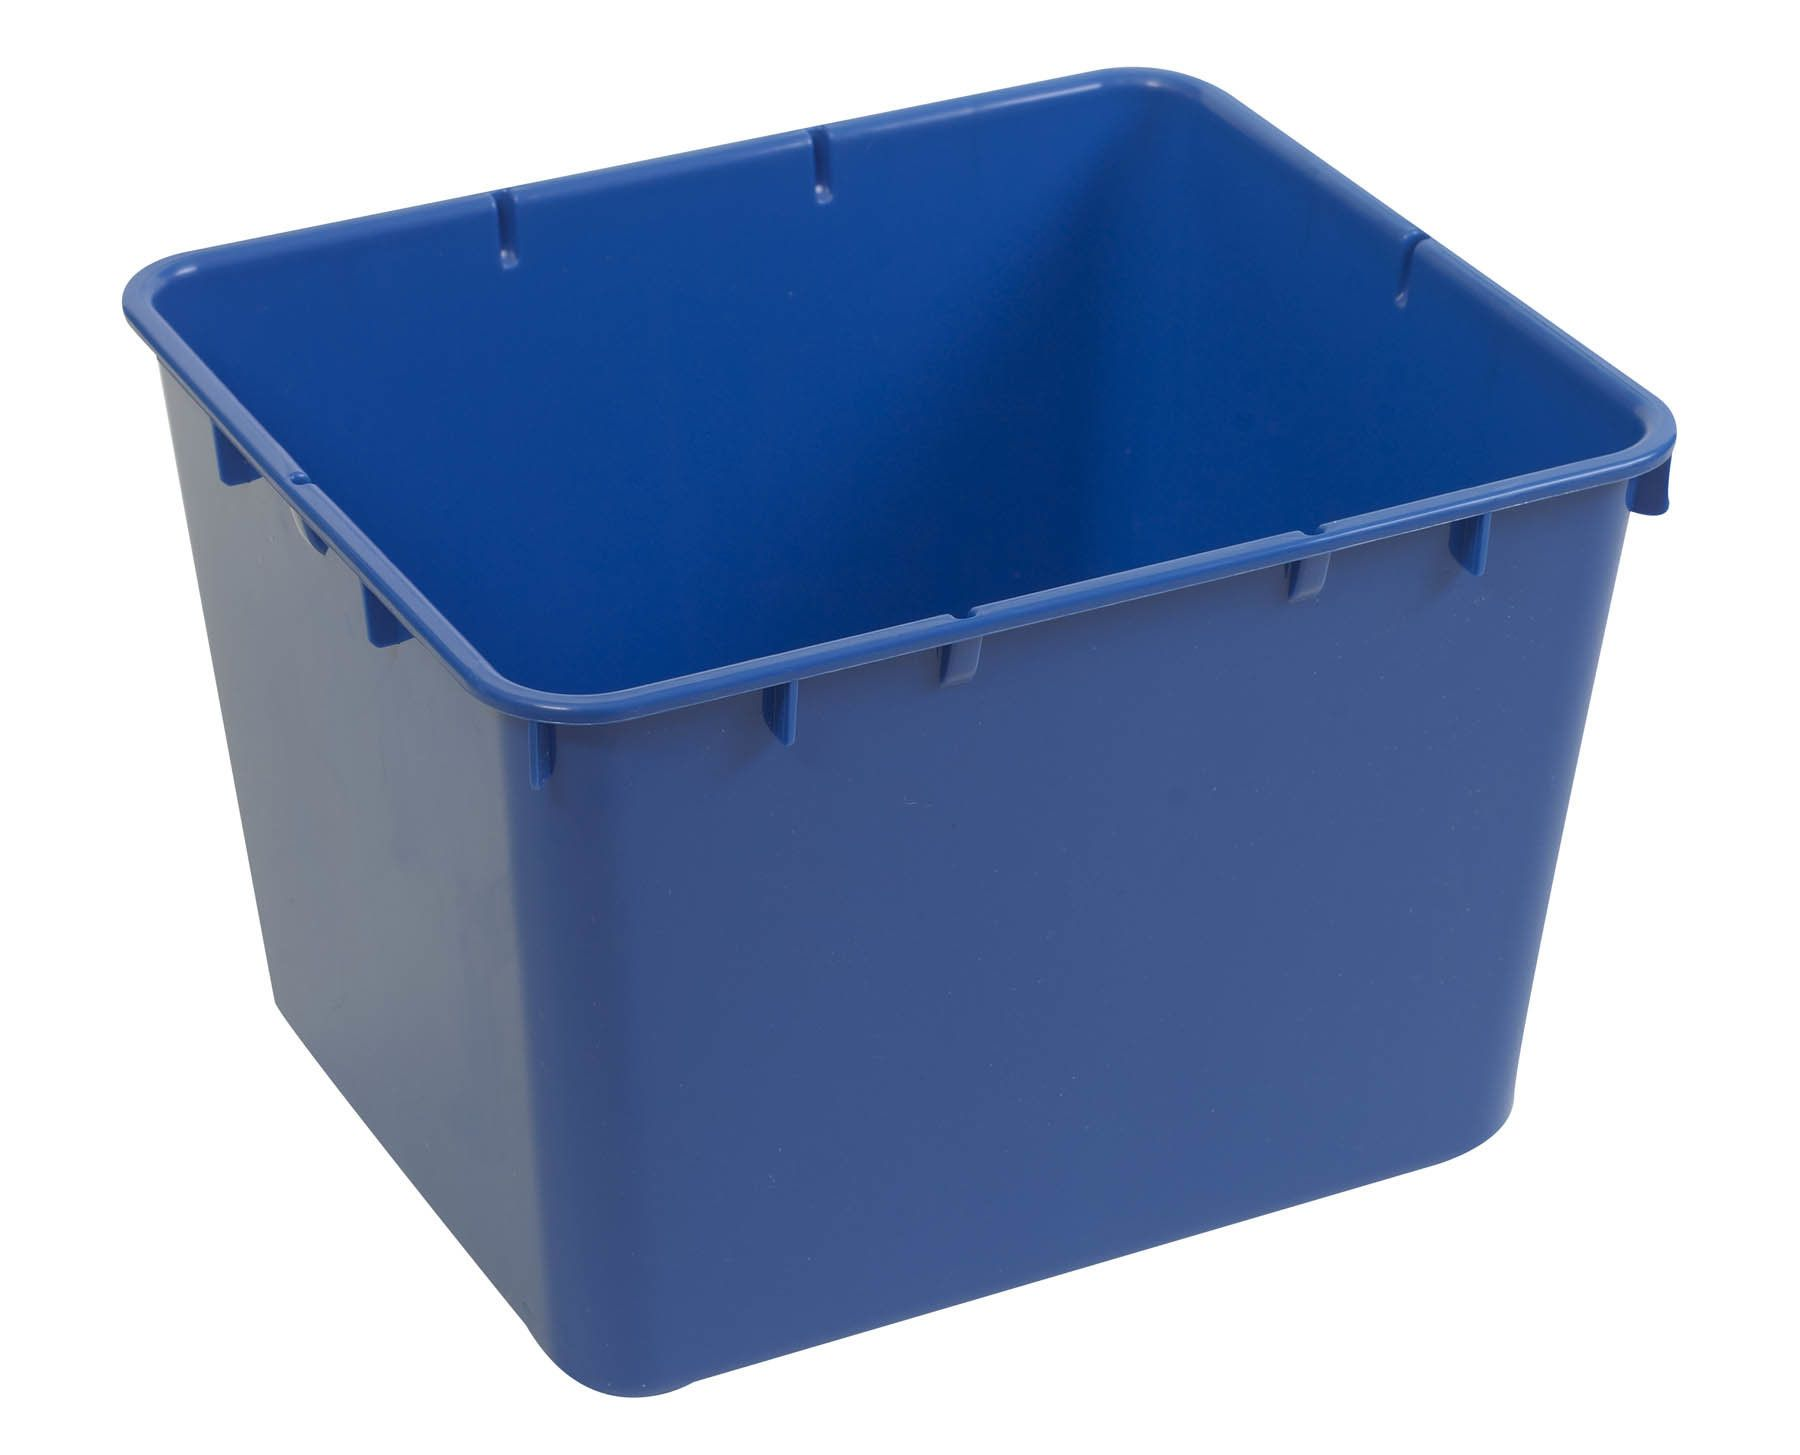 Cubbie Tub | Tubs, School furniture and Products